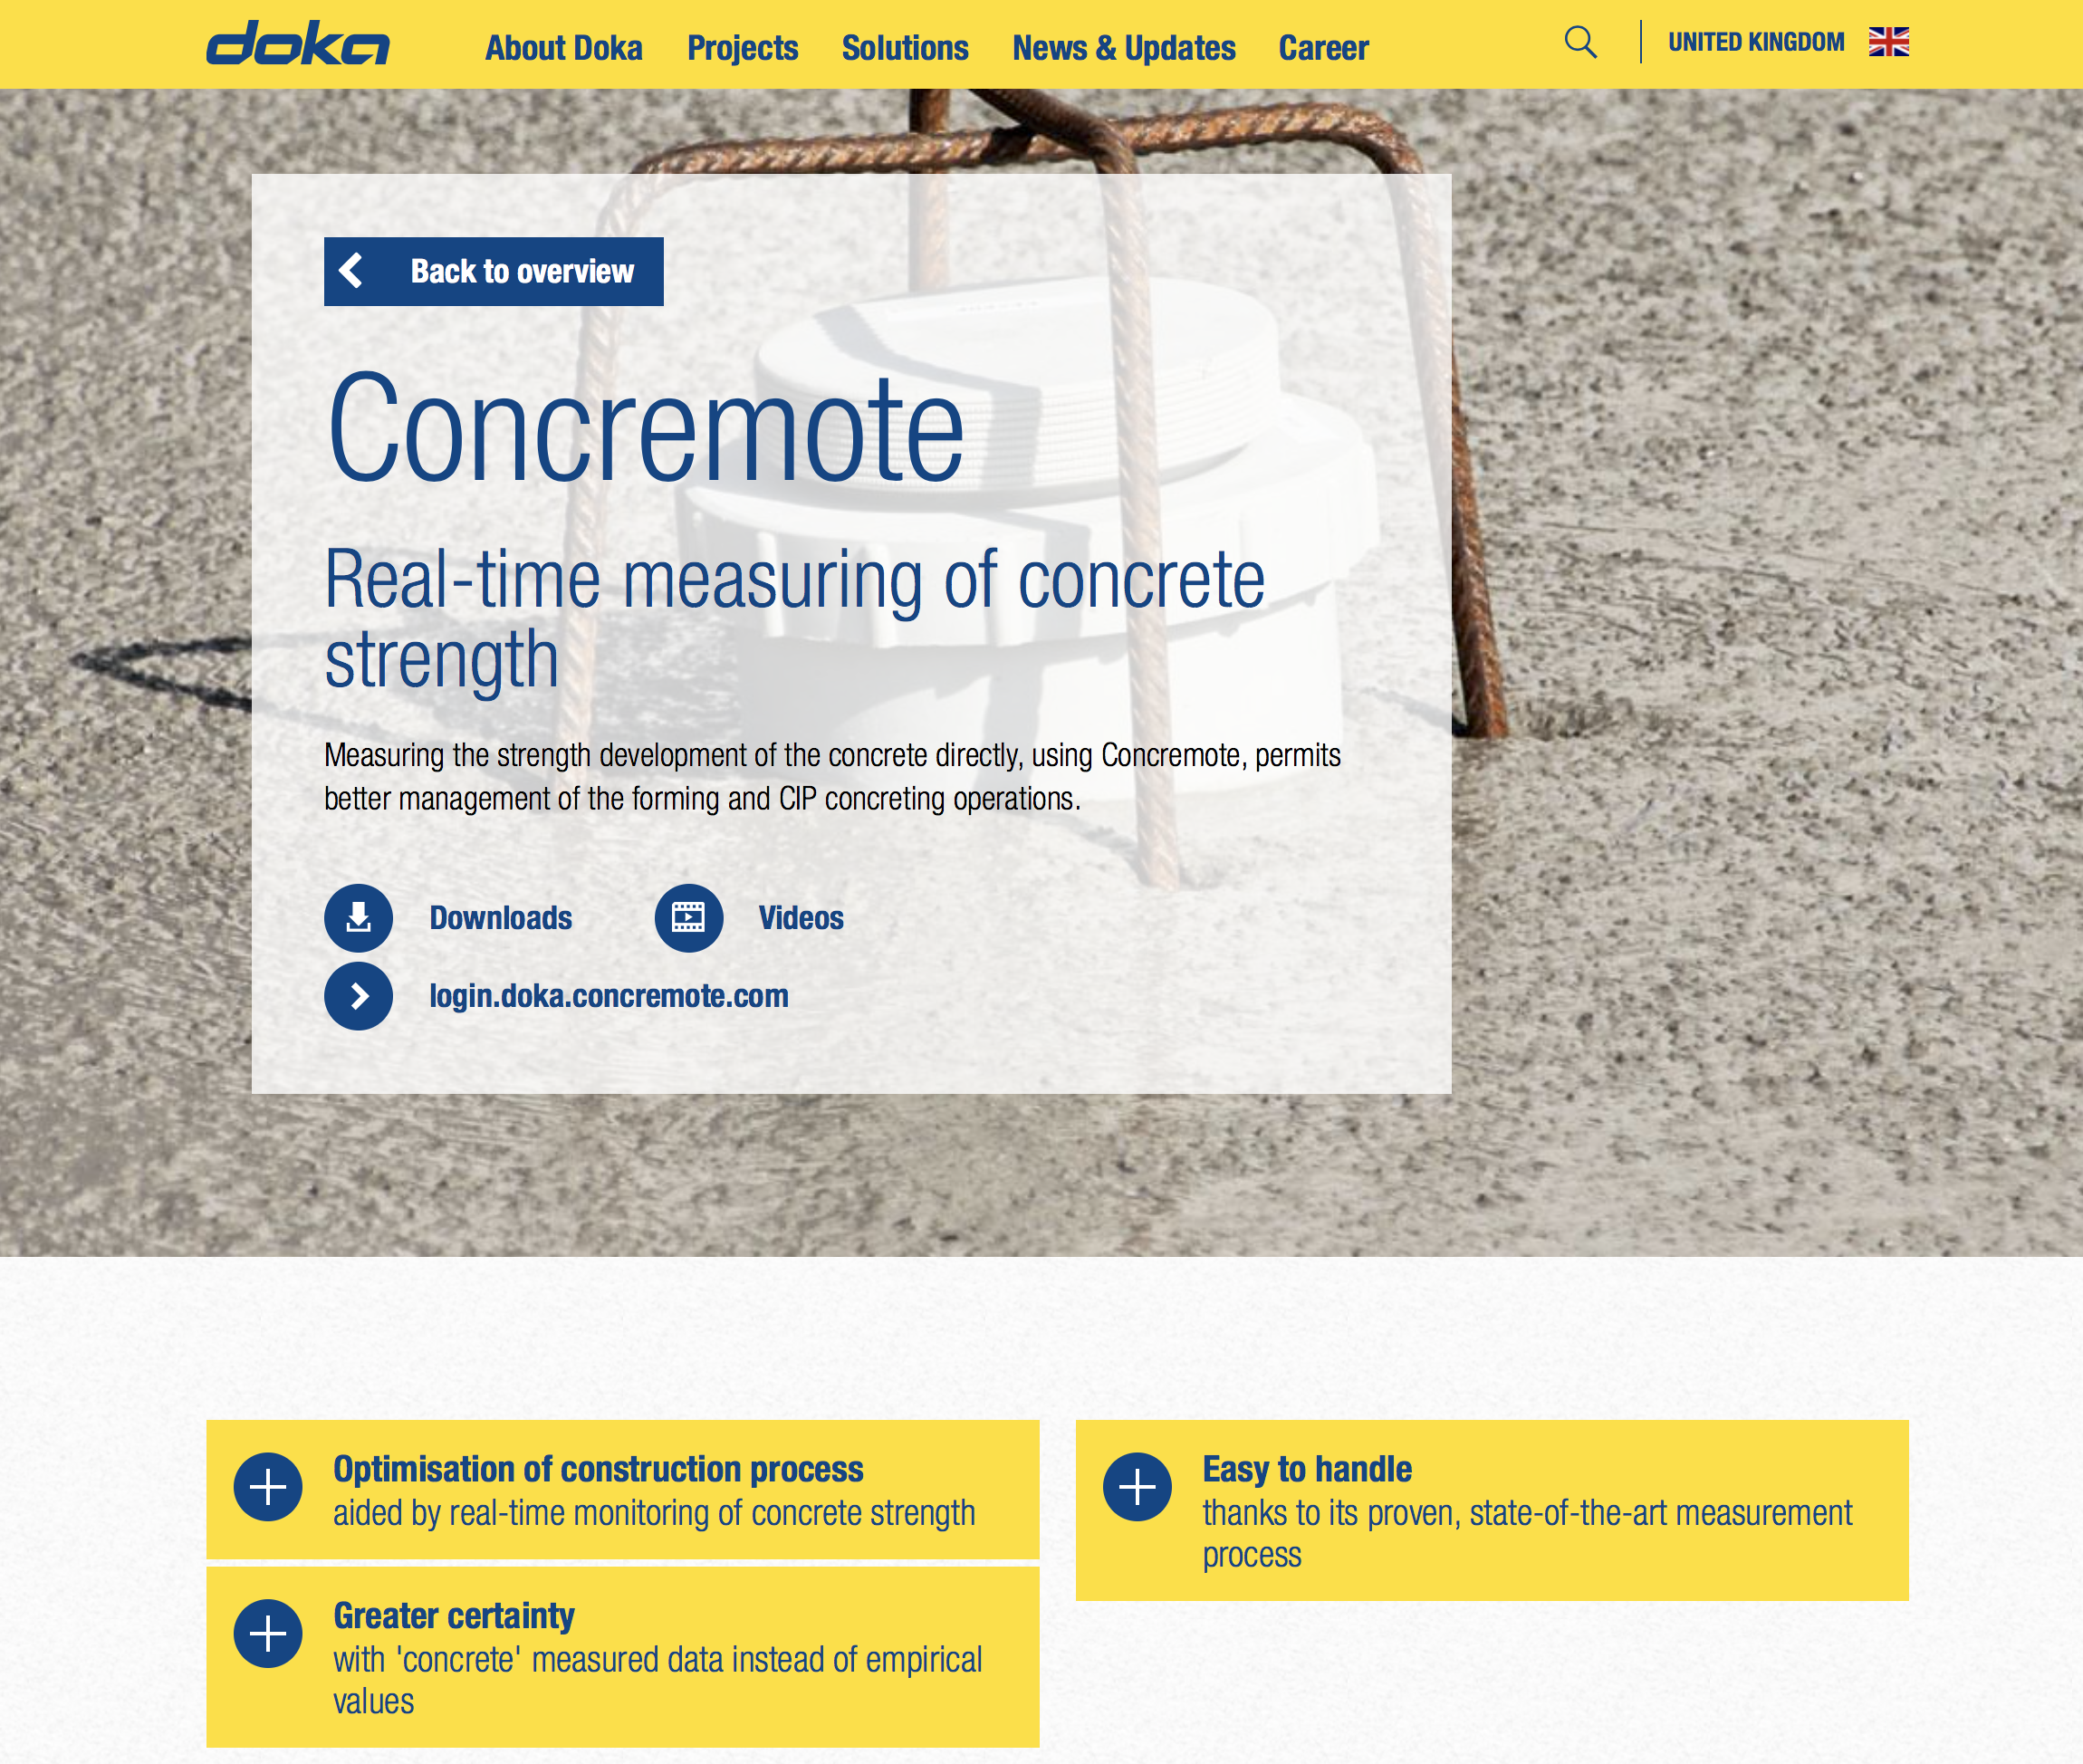 Concremote Doka UK